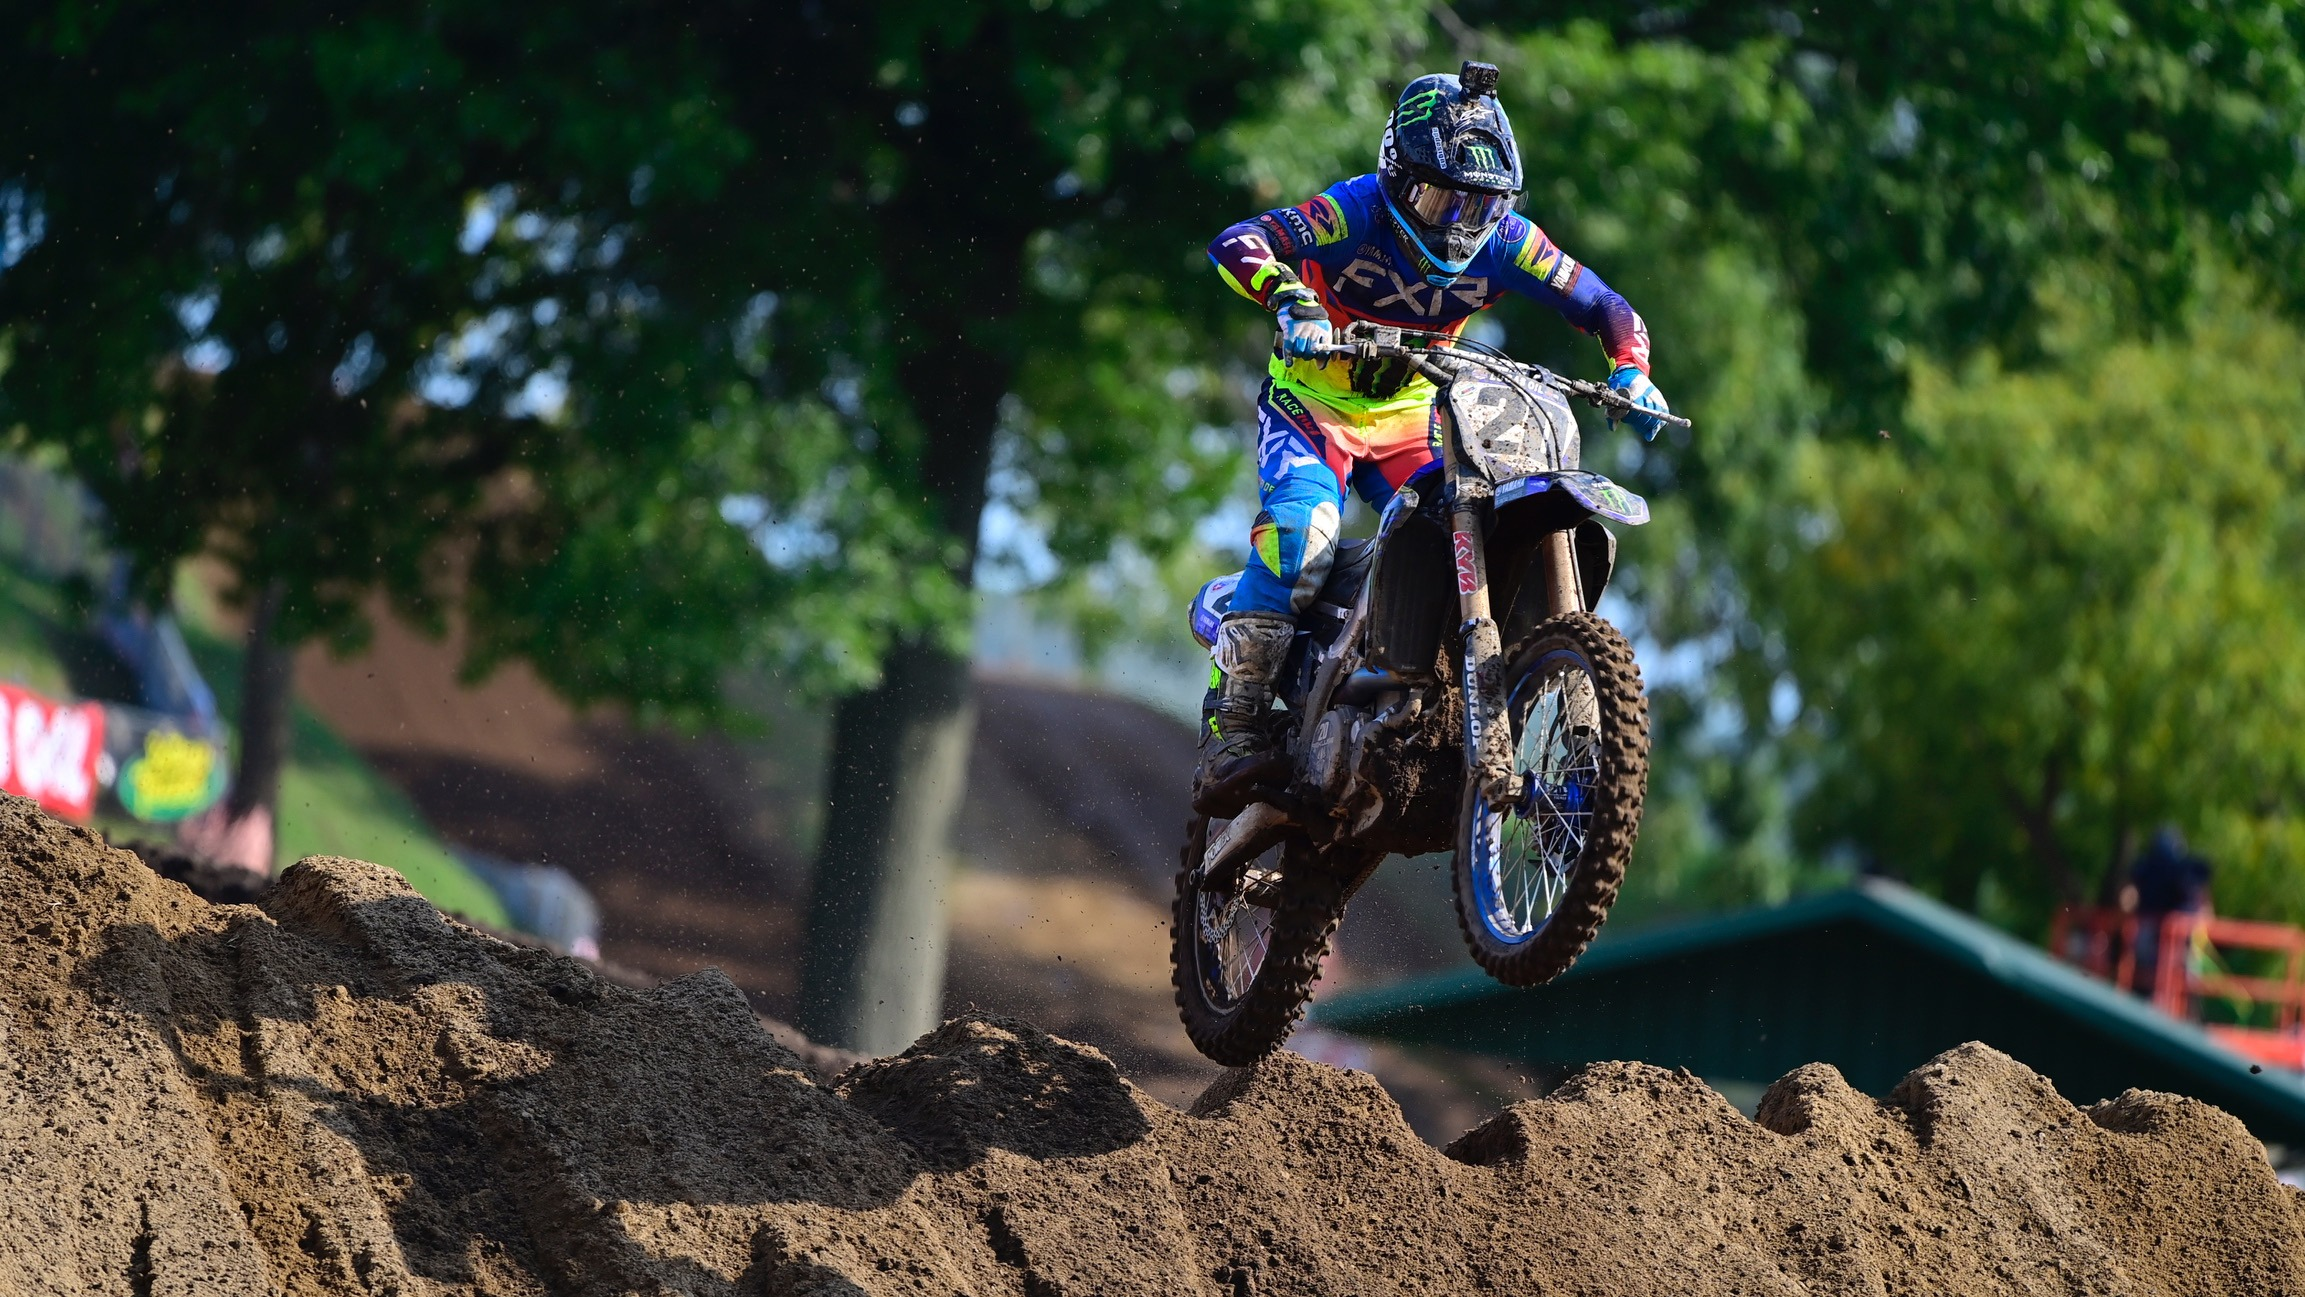 Tickle, Barcia Finish Inside the Top 10 at RedBud II